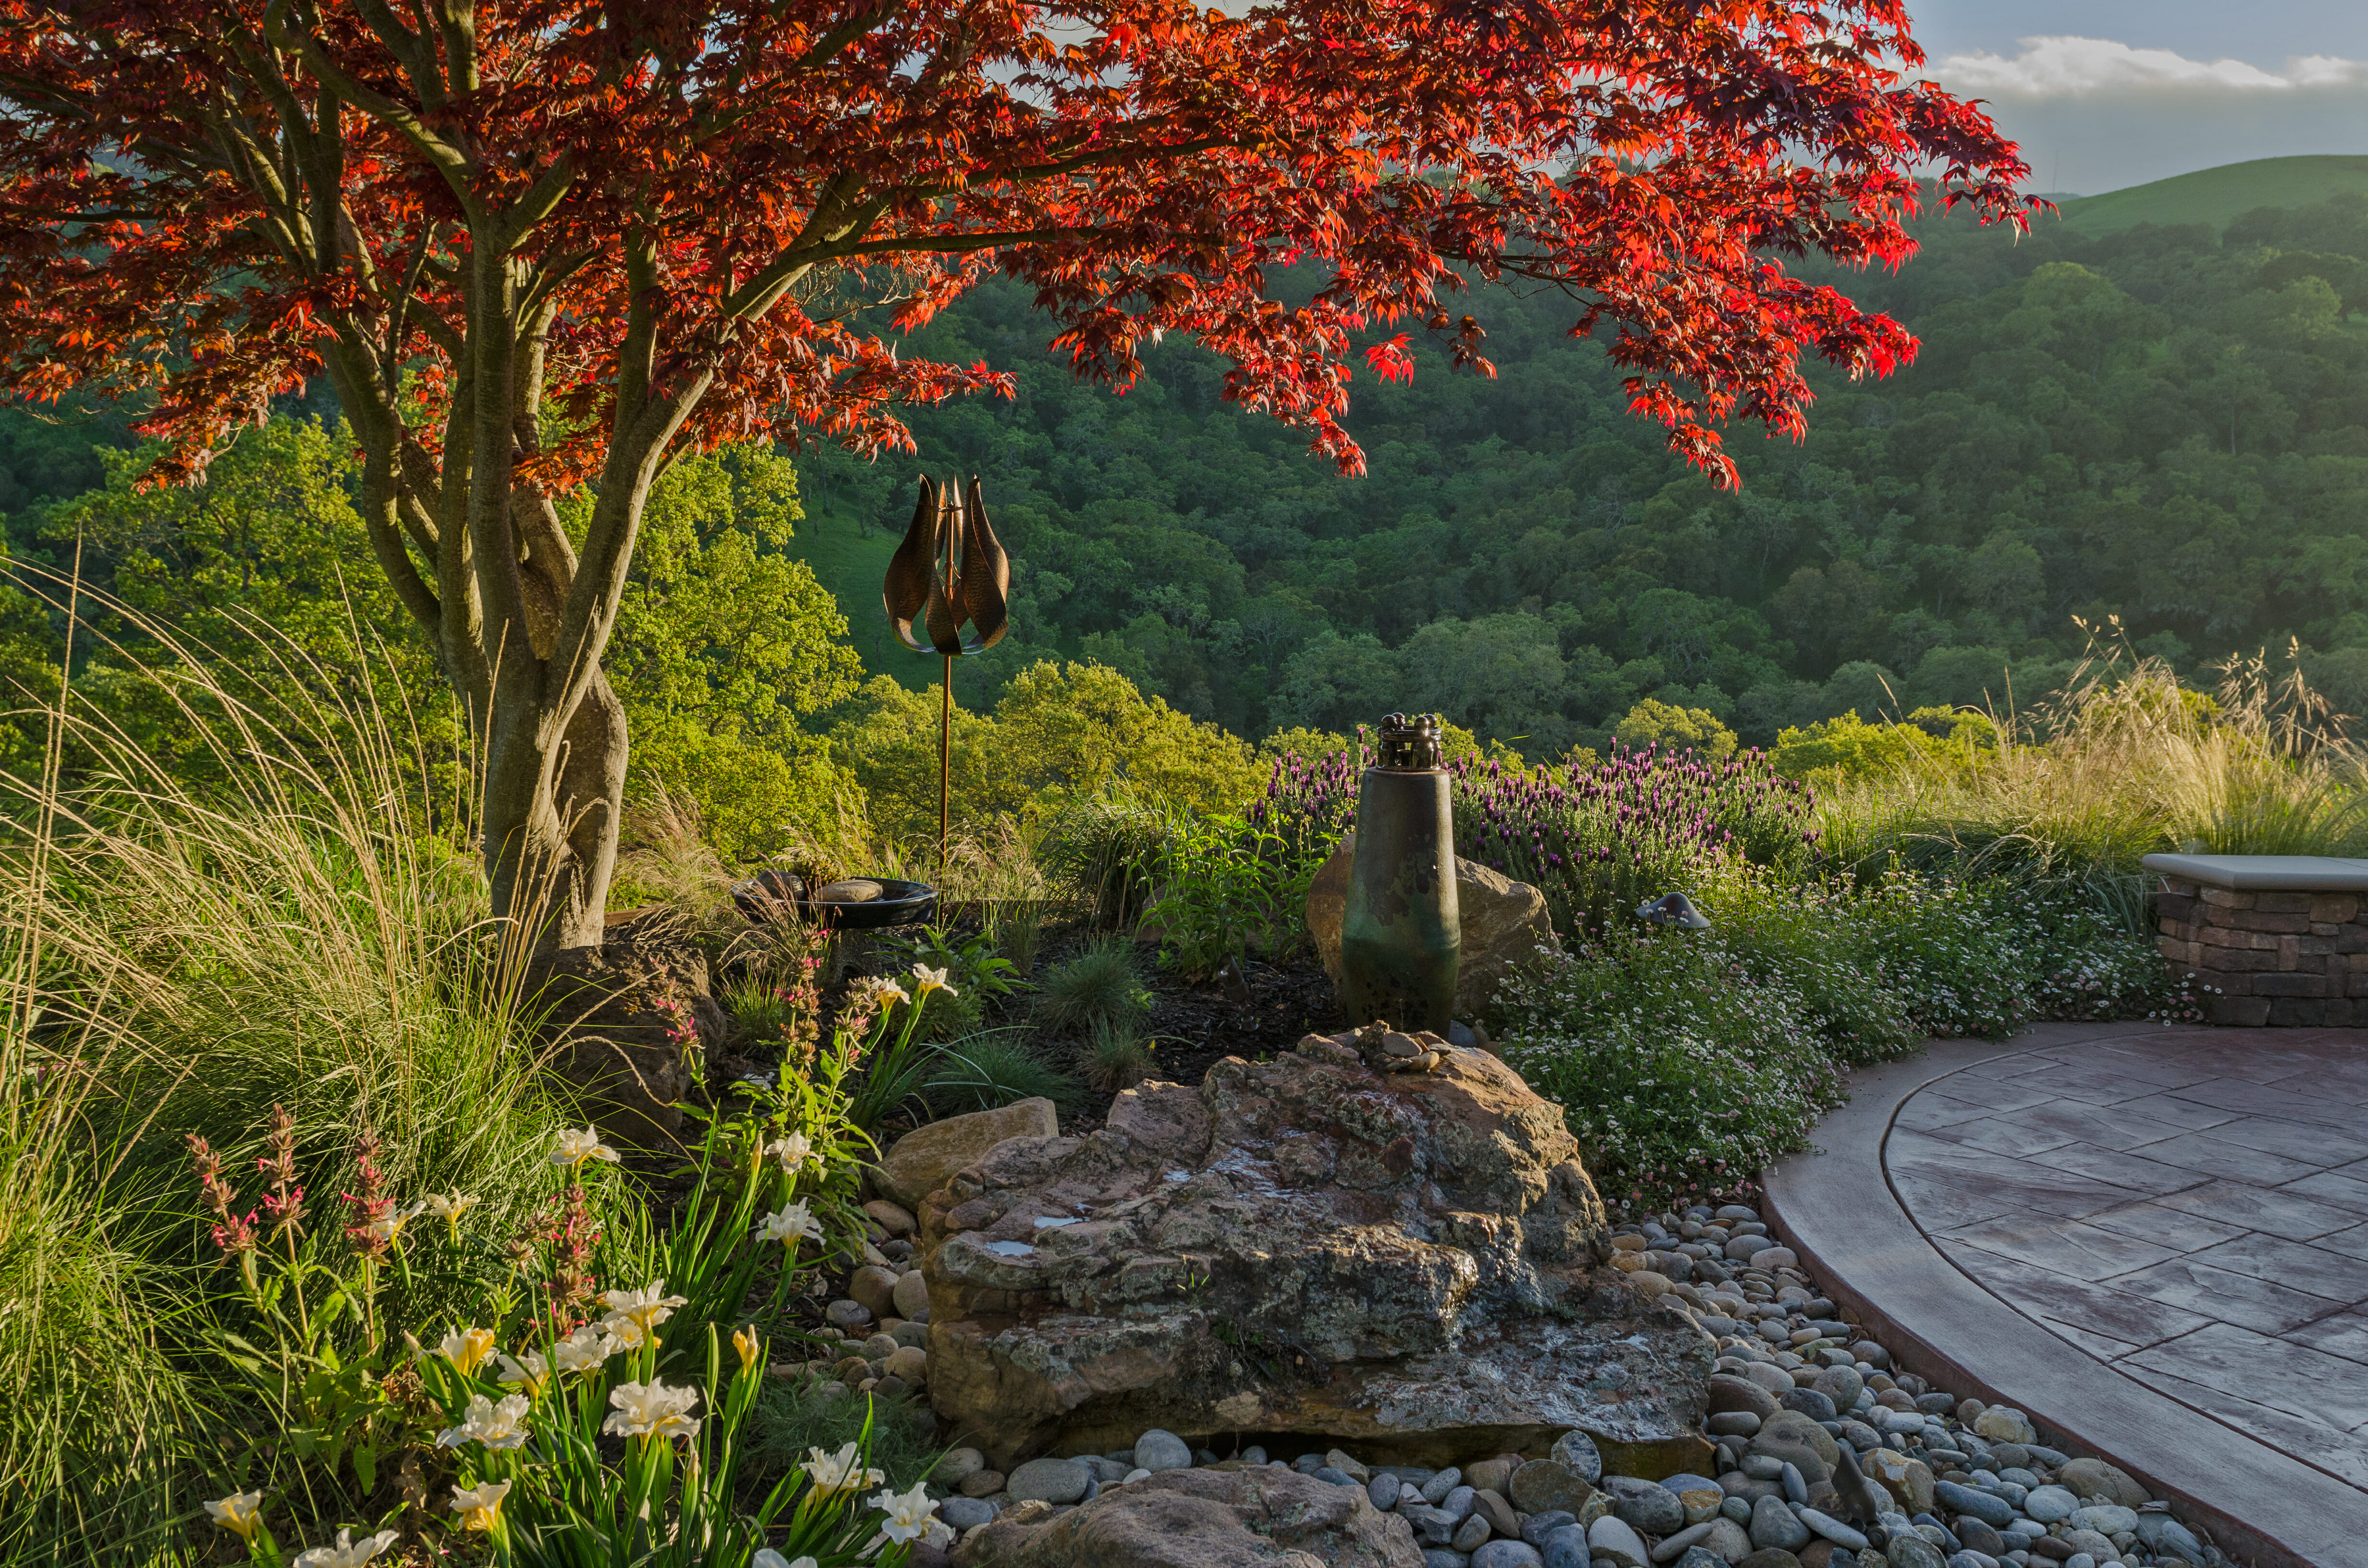 Kalich - Boulder fountain, Japanese maple tree, native planting, stamped concrete